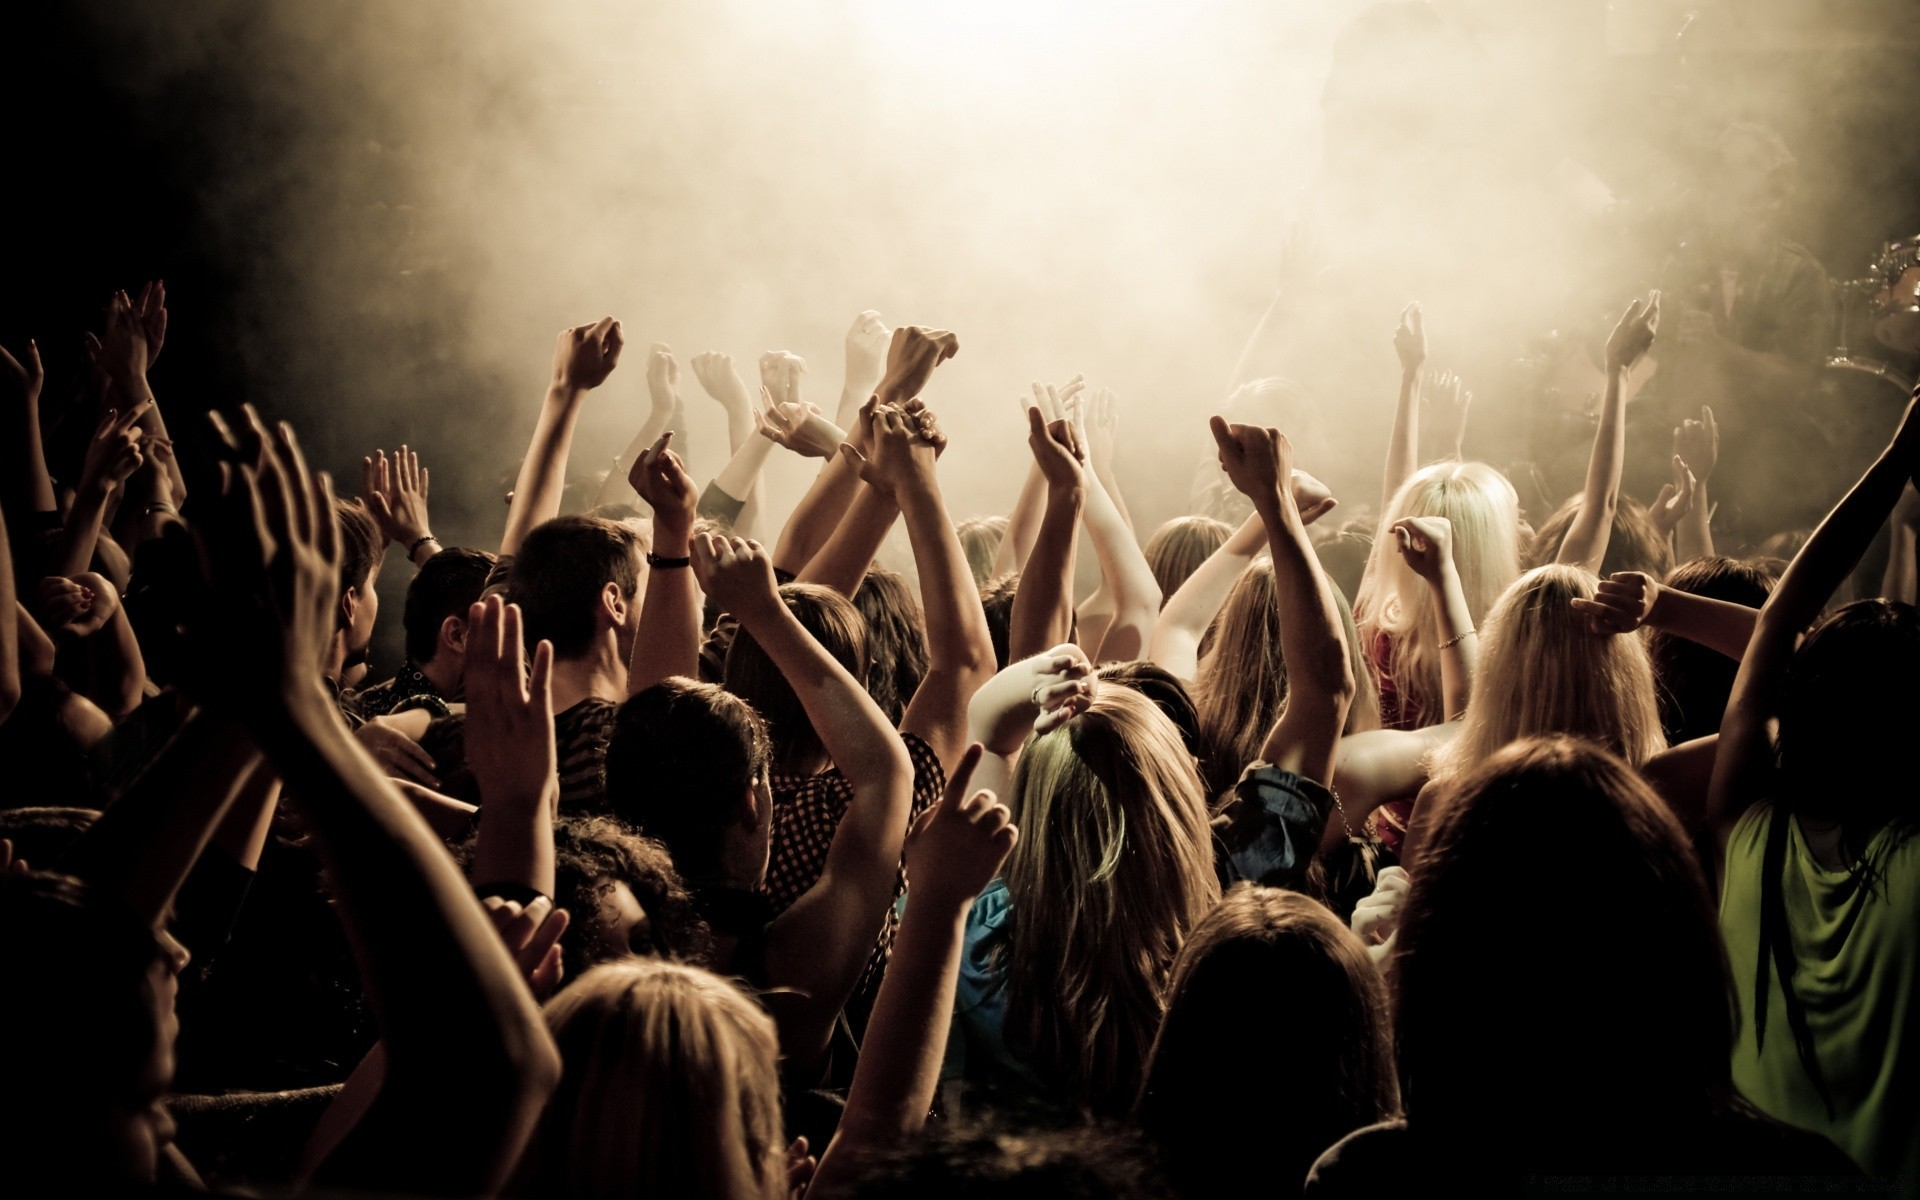 music crowd concert group many audience band performance adult musician woman dancing man child